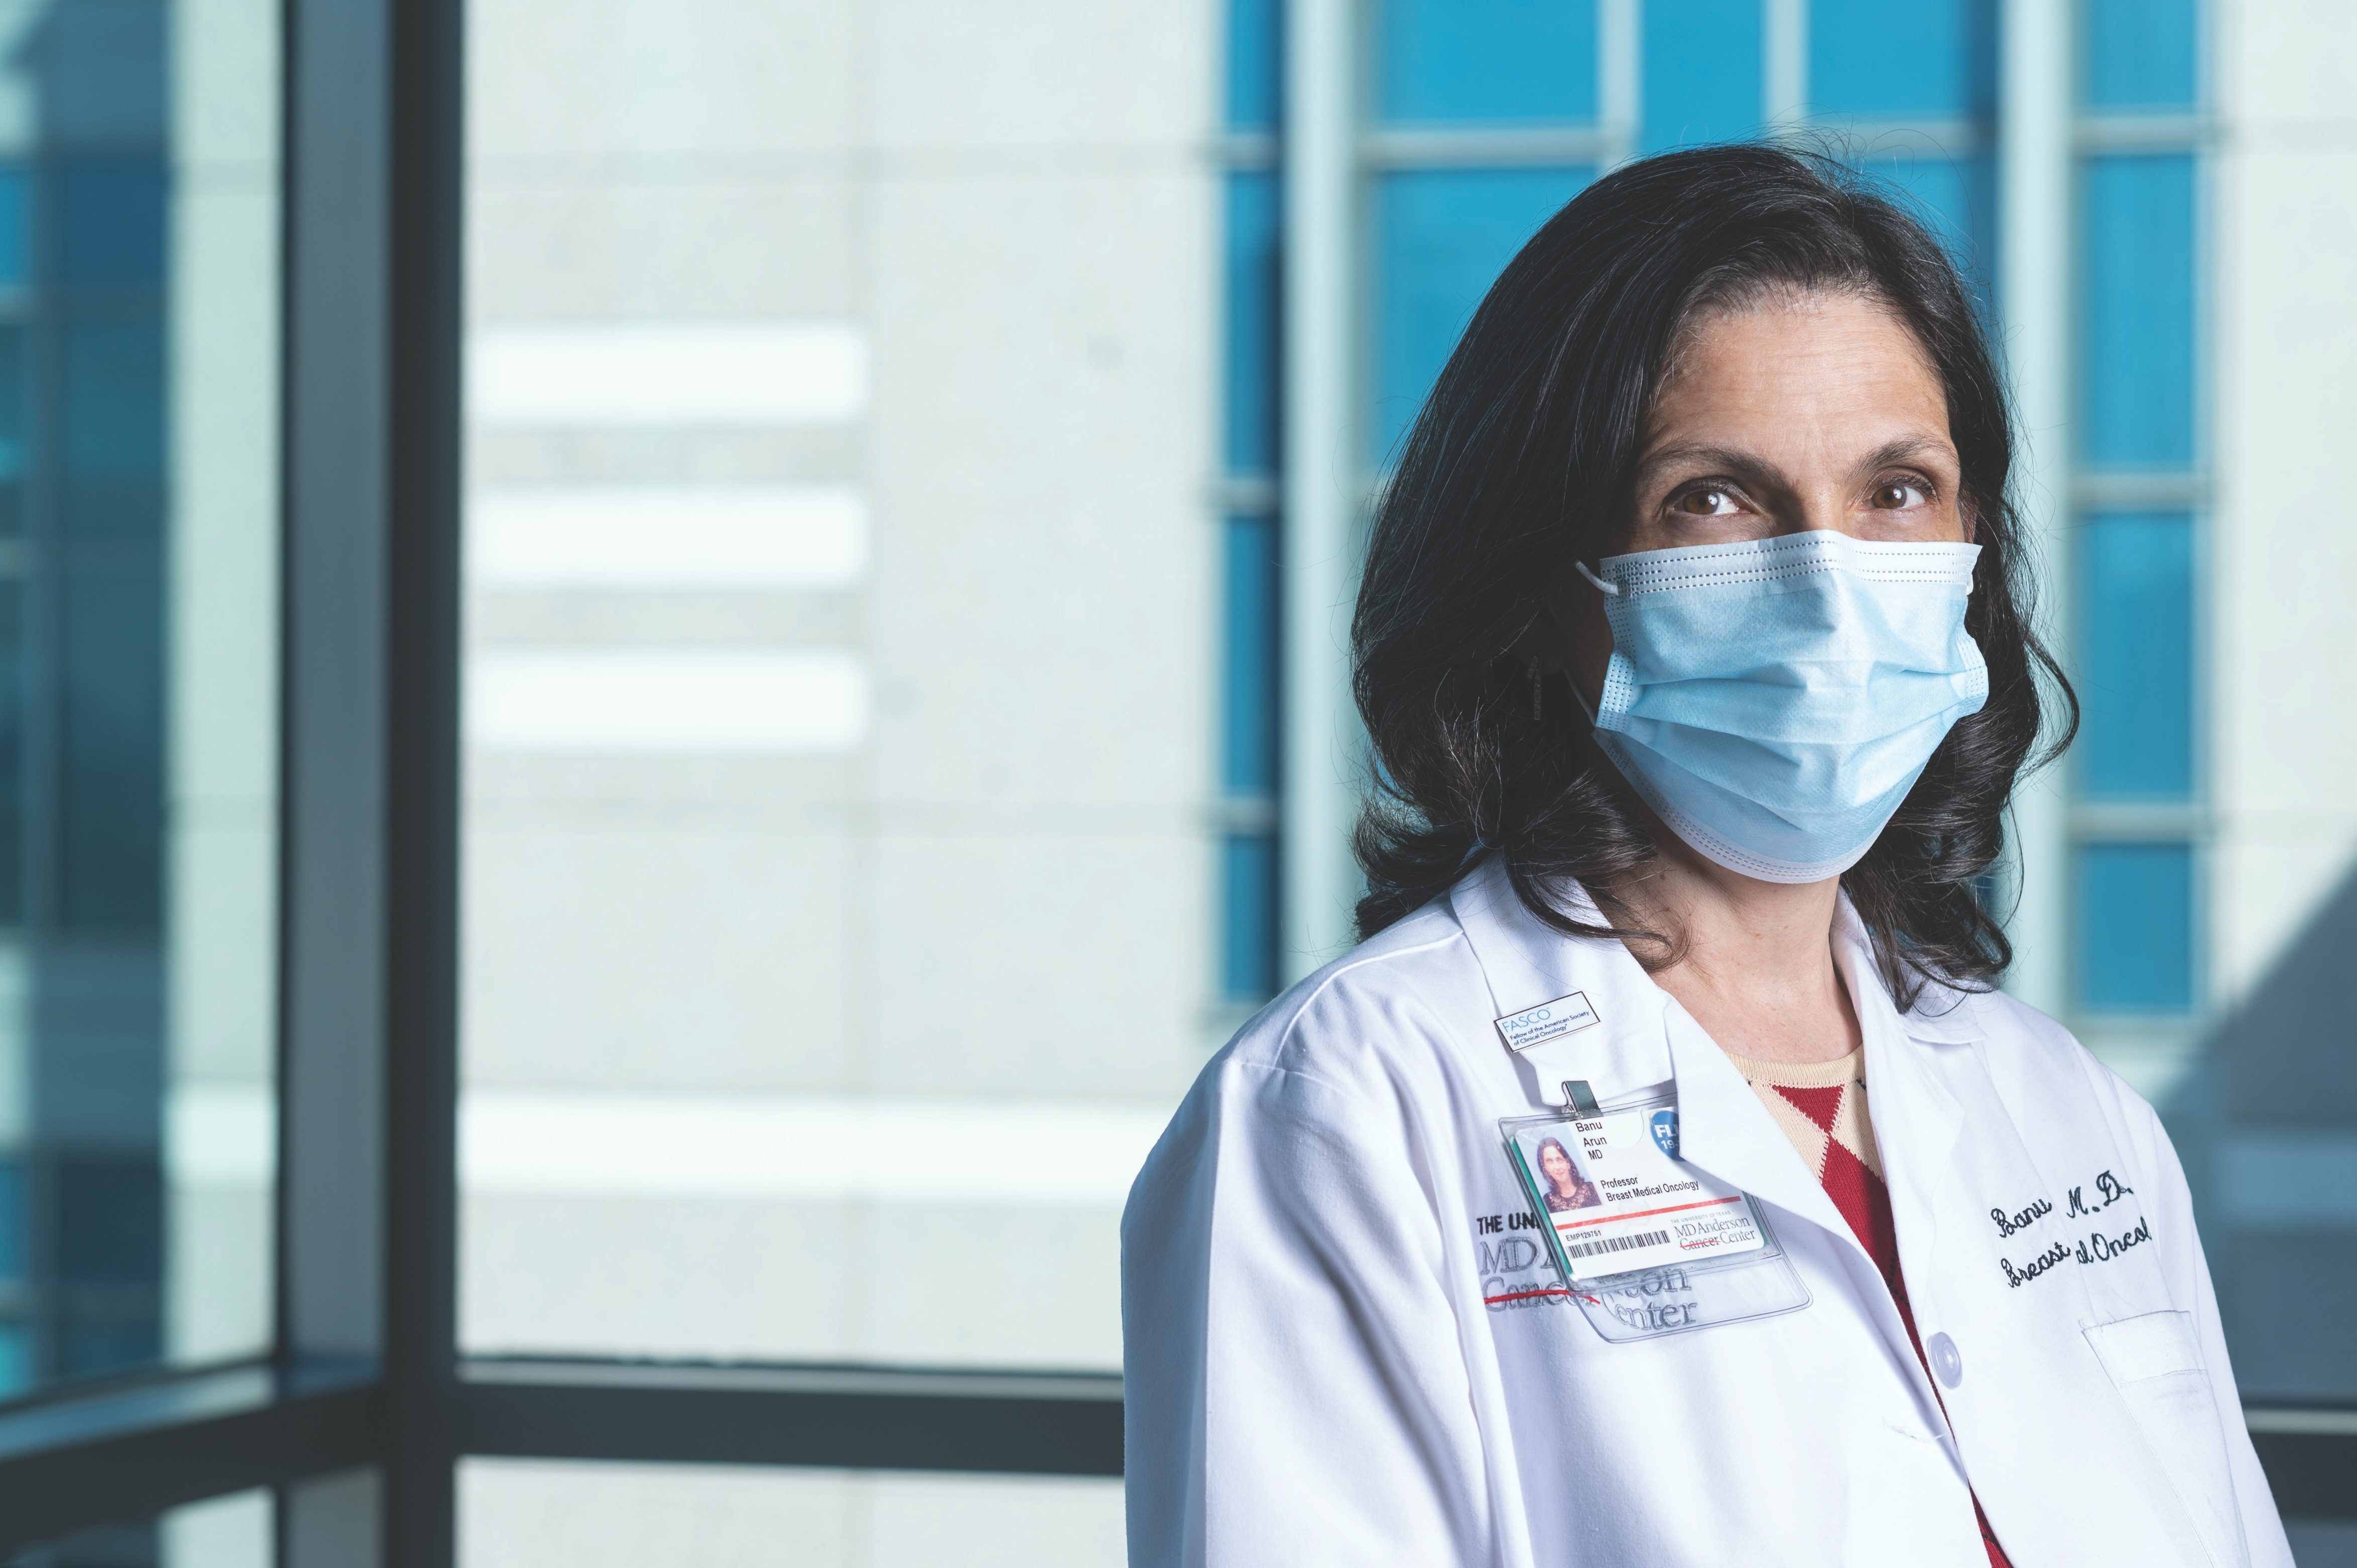 Genetic counseling and testing specialist Banu Arun, M.D., stands wearing a medical-grade face mask